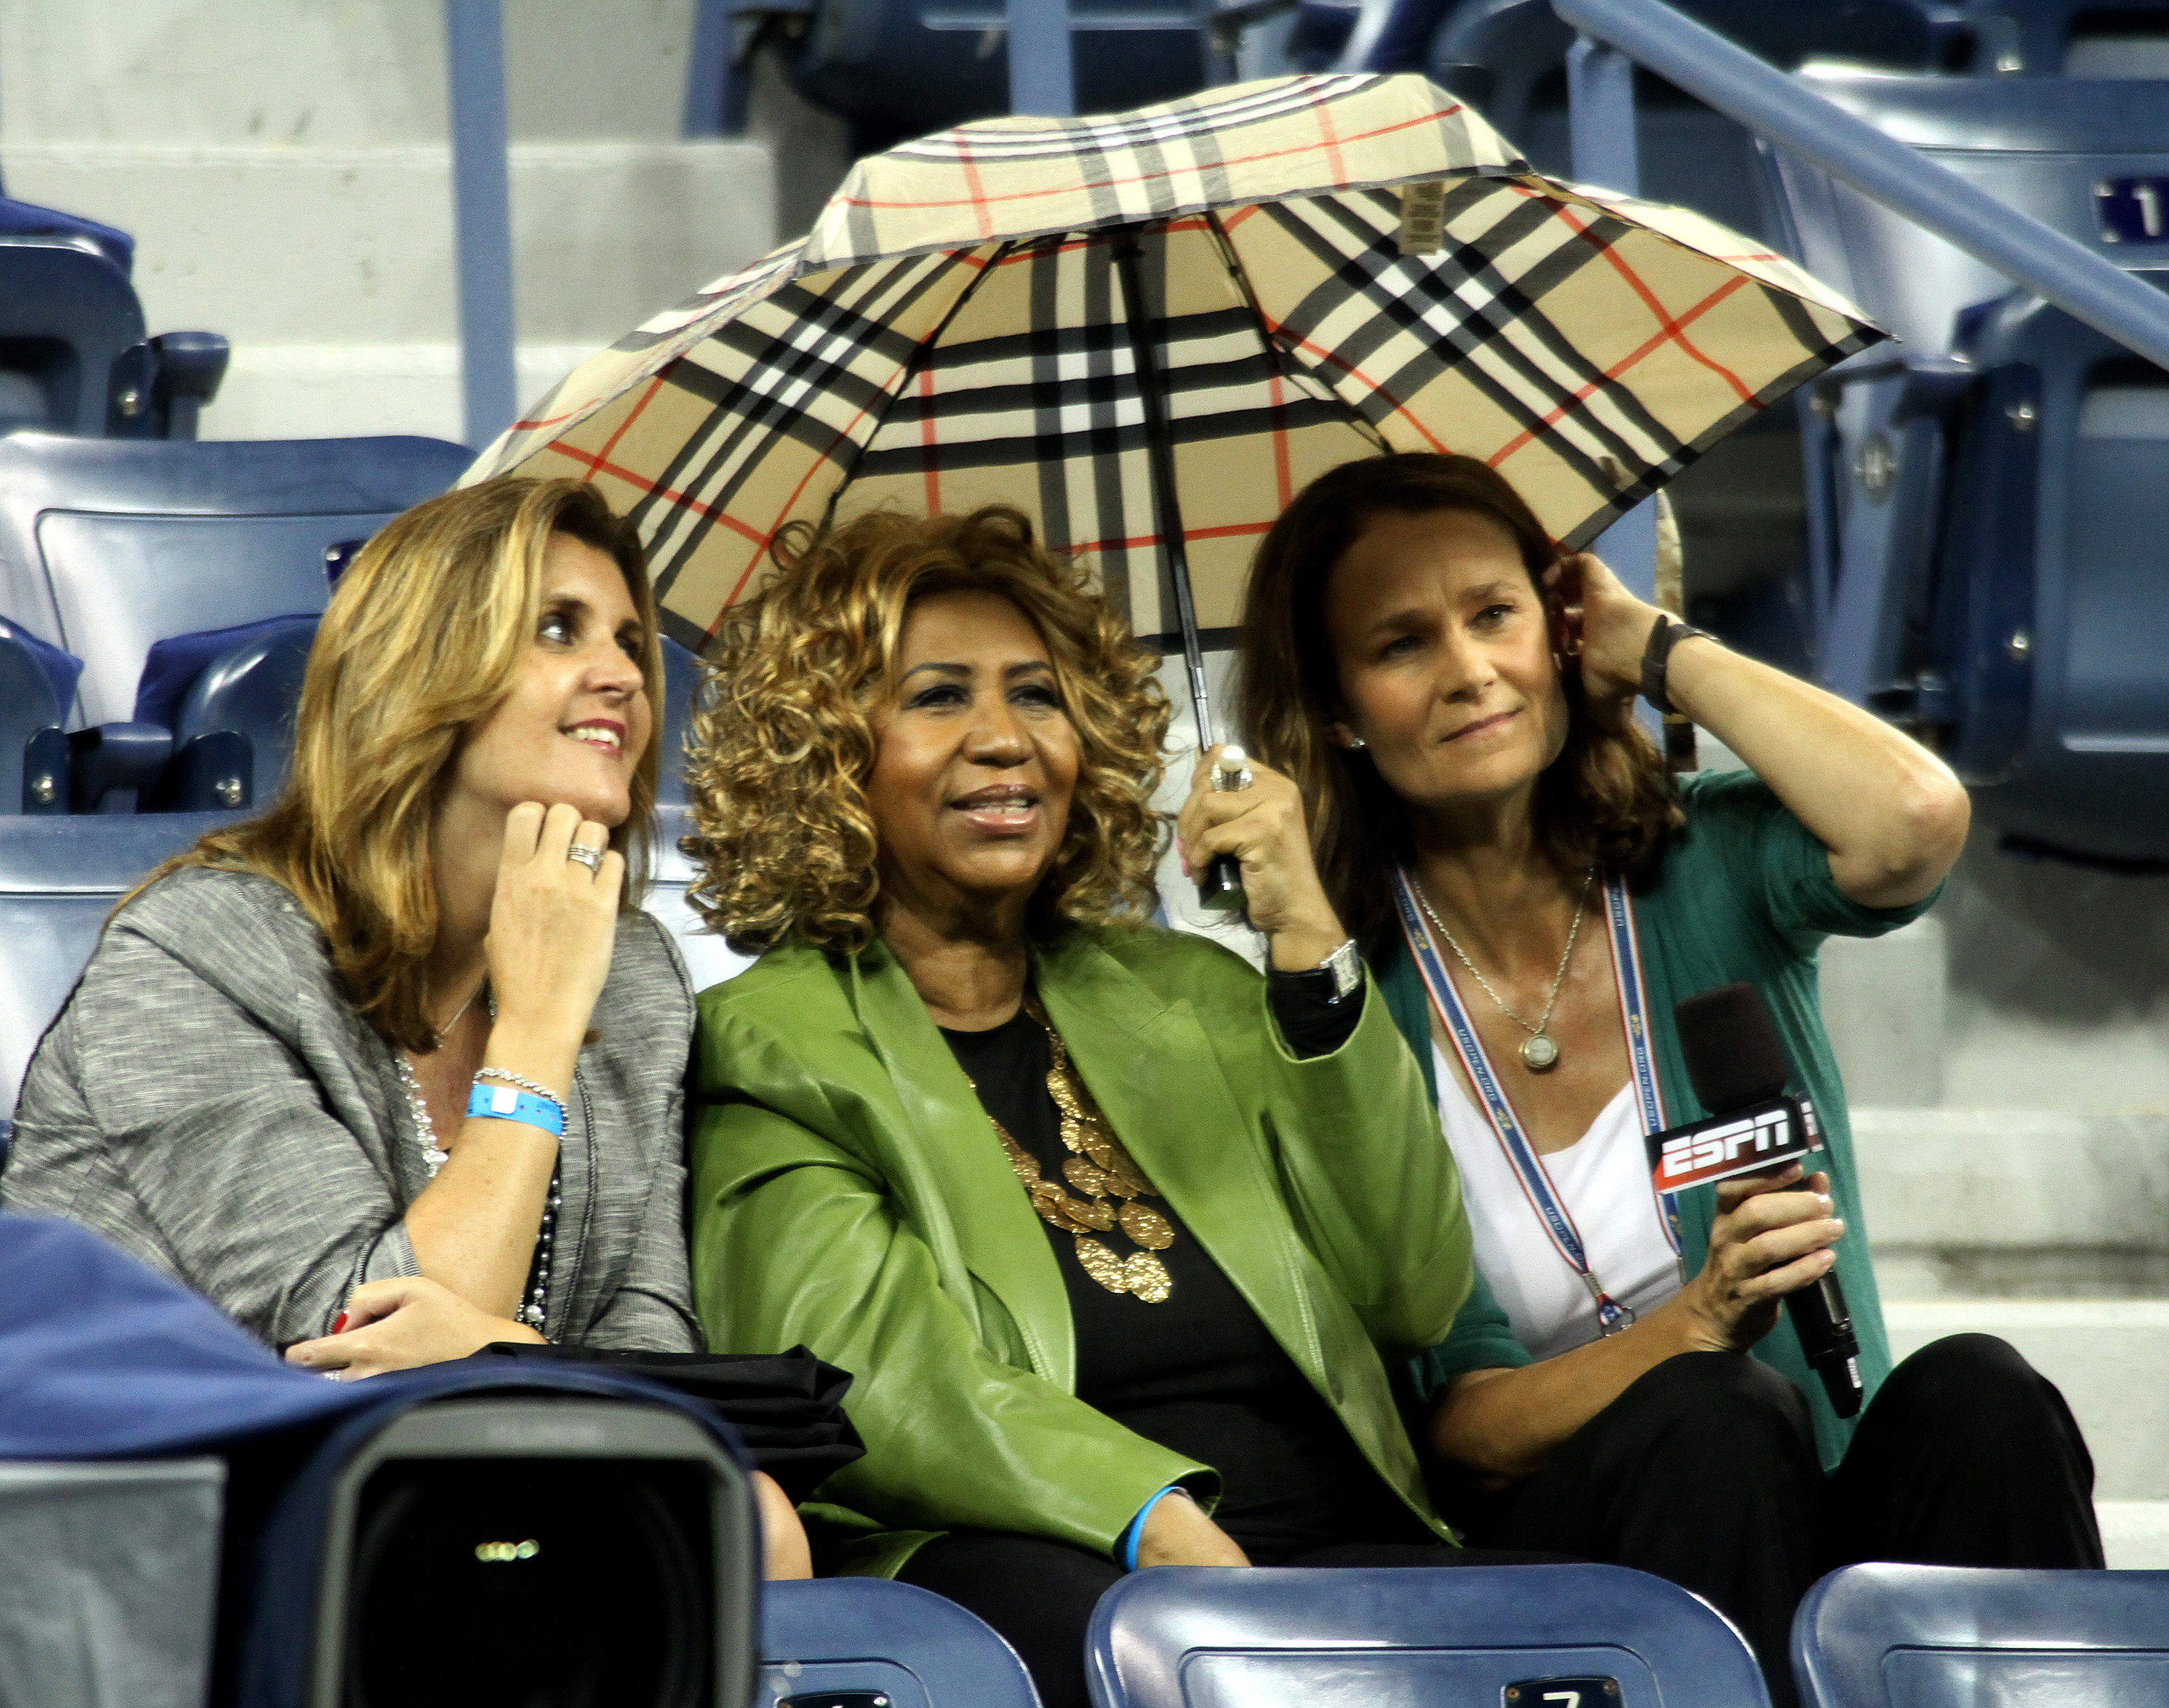 Aretha Franklin at a match between Jo-Wilfred Tsonga and Roger Federer on day eleven of the US Open held at the USTA Billie Jean King National Tennis Center in Flushing, Queens. The match was suspended due to the rain. (Where: New York, New York. When: Sep. 8 2011. Credit: WENN)